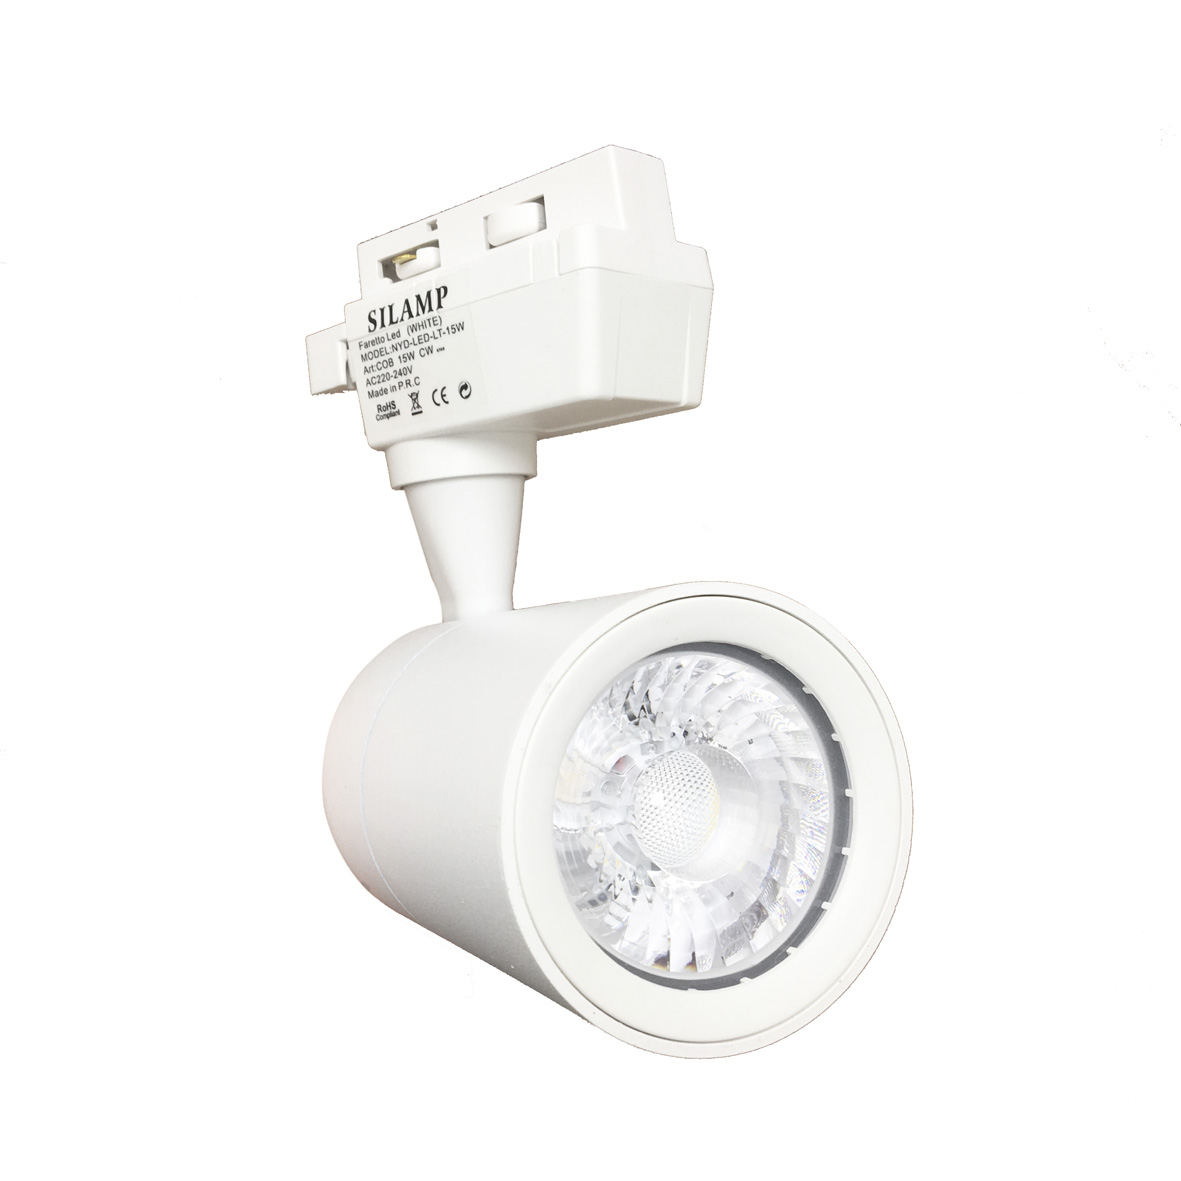 Faretto LED Bianco a binario 15W Monofase faro super compatto COB FB-26-15W